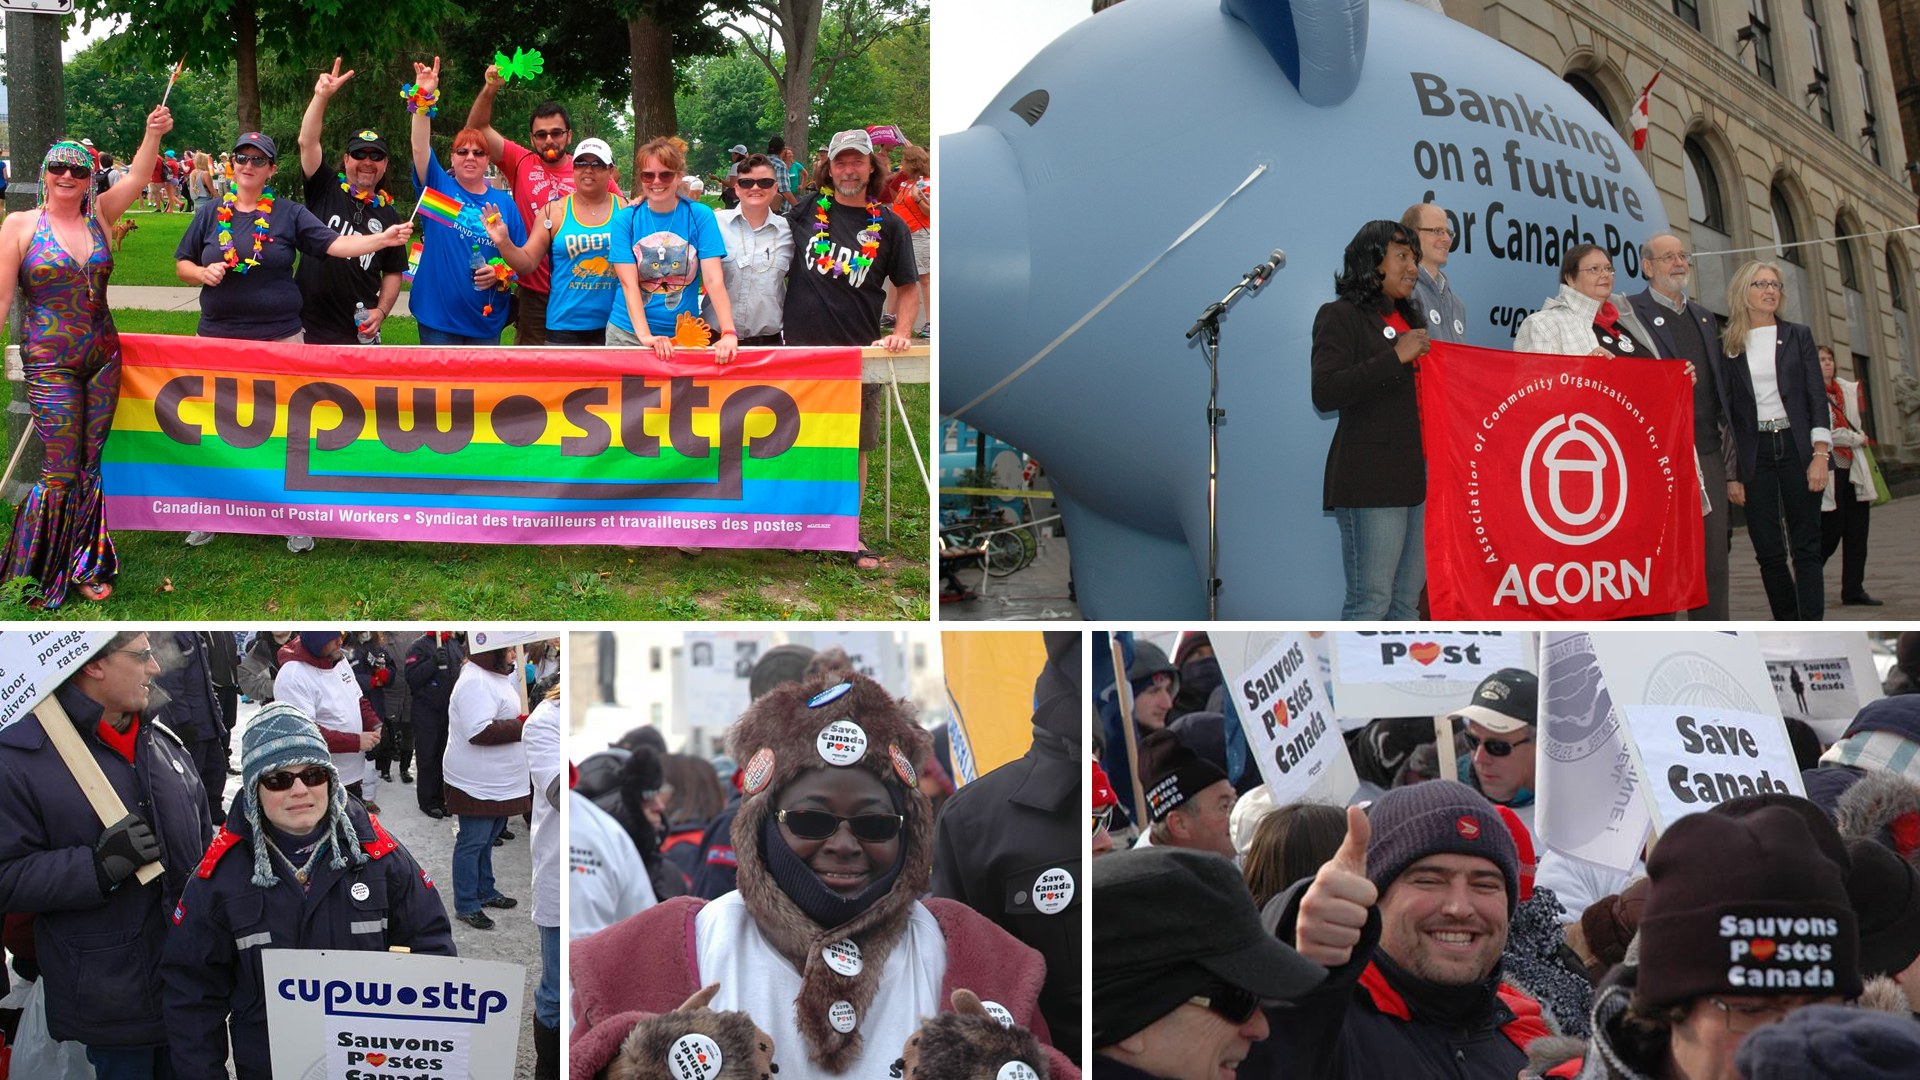 CUPW members campaigning for Pride, Parental Leave for RSMCs, and against postal service cuts.